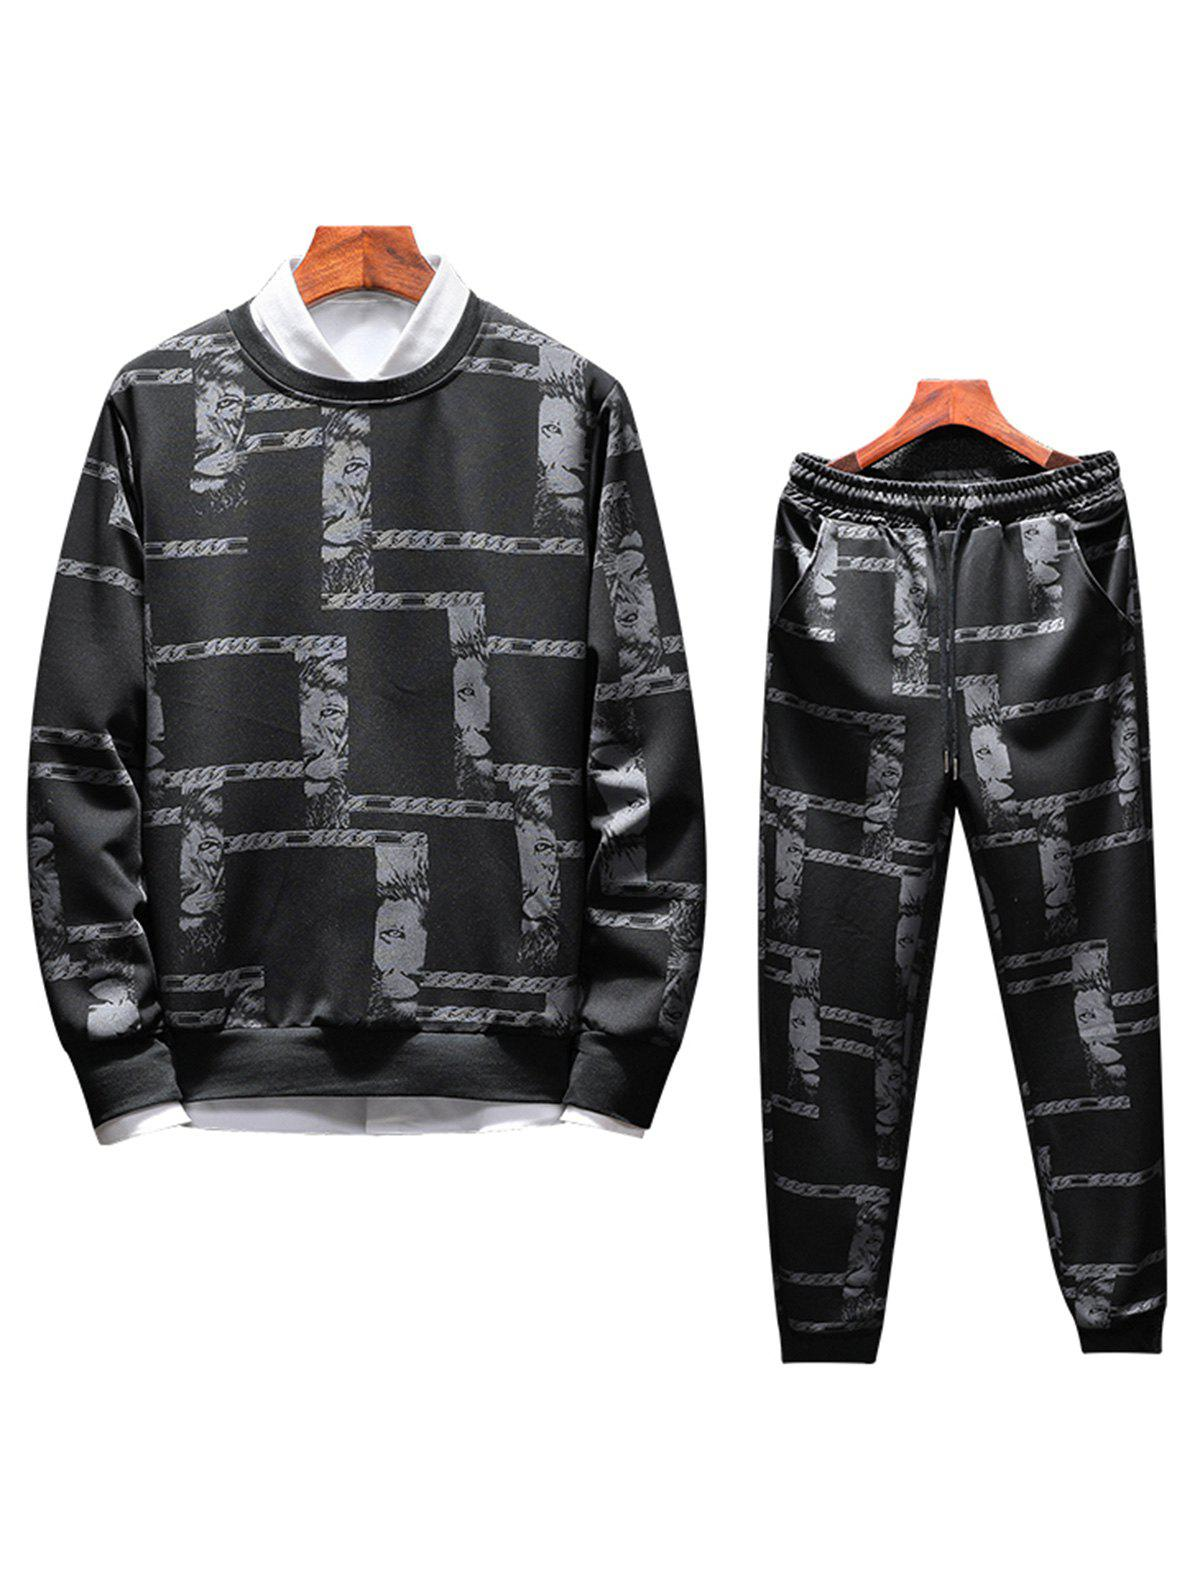 Buy Printed Sweatshirt Twinset